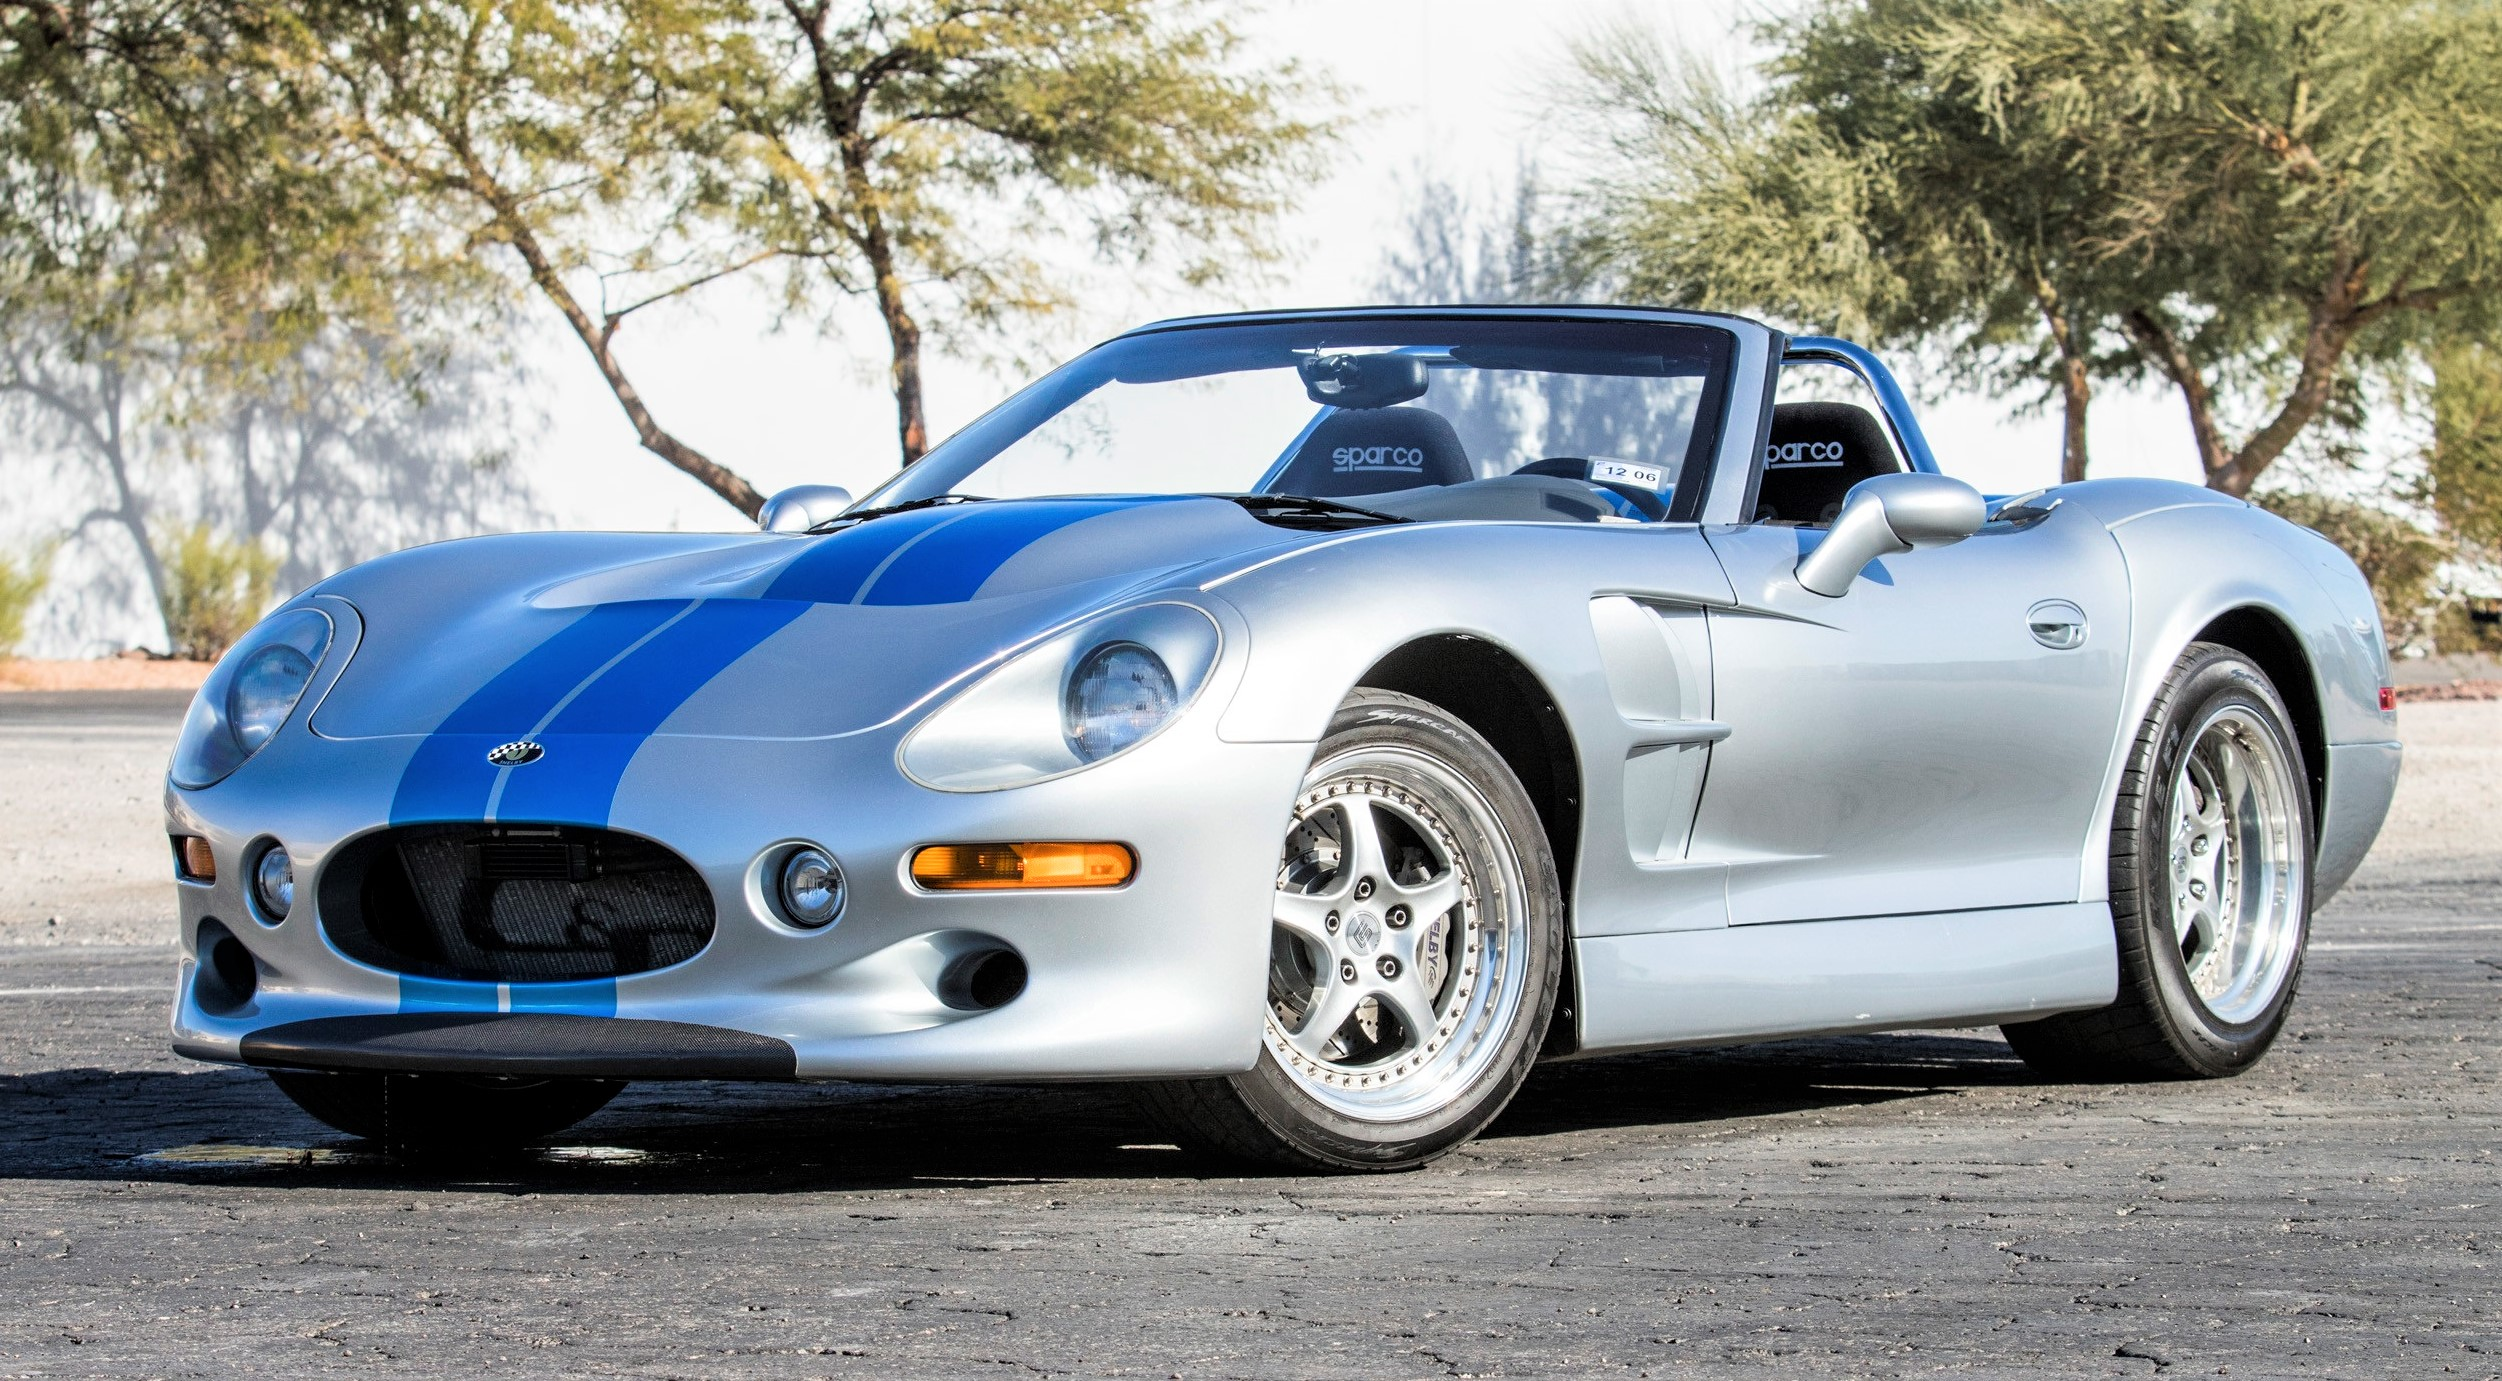 The Shelby Series 1 was from Carroll Shelby's collection